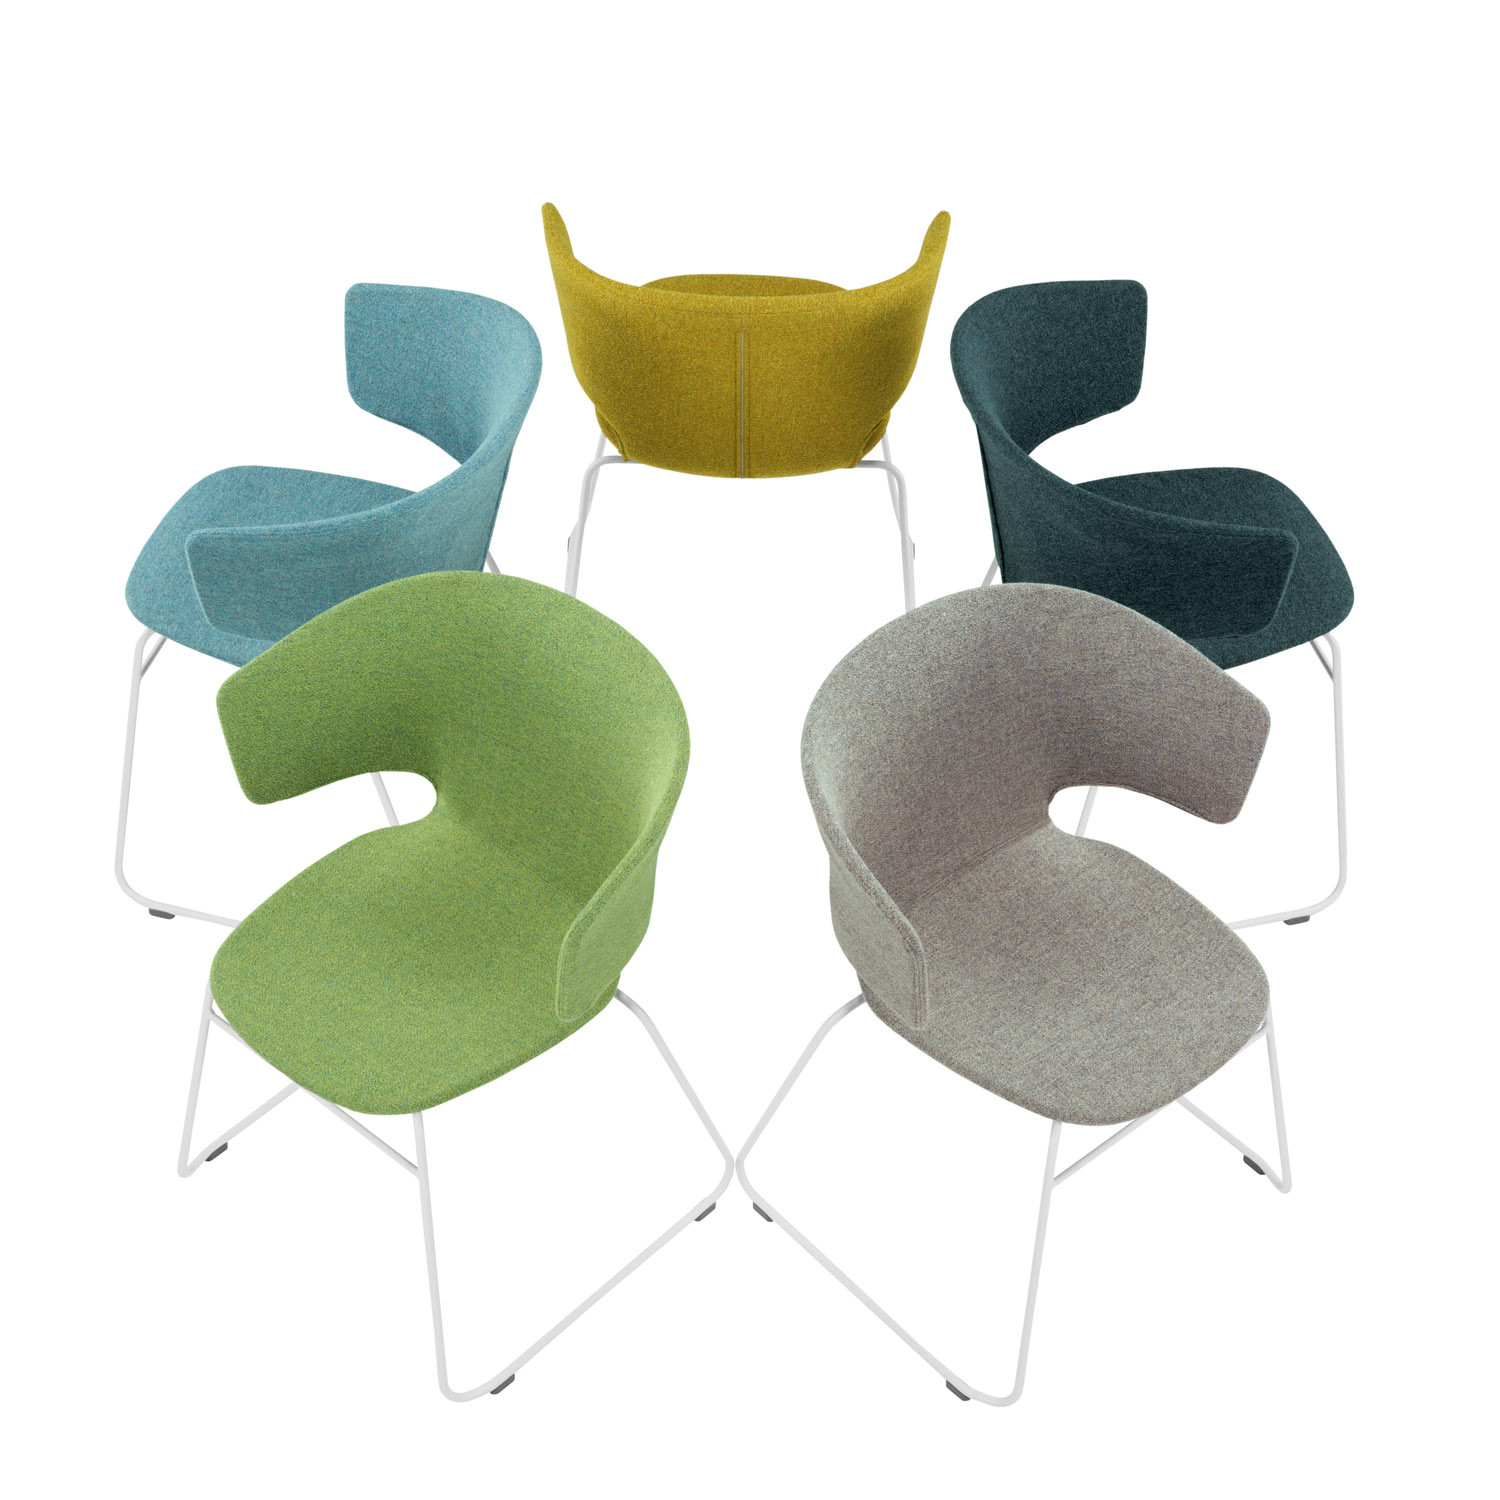 Taormina Chair Range